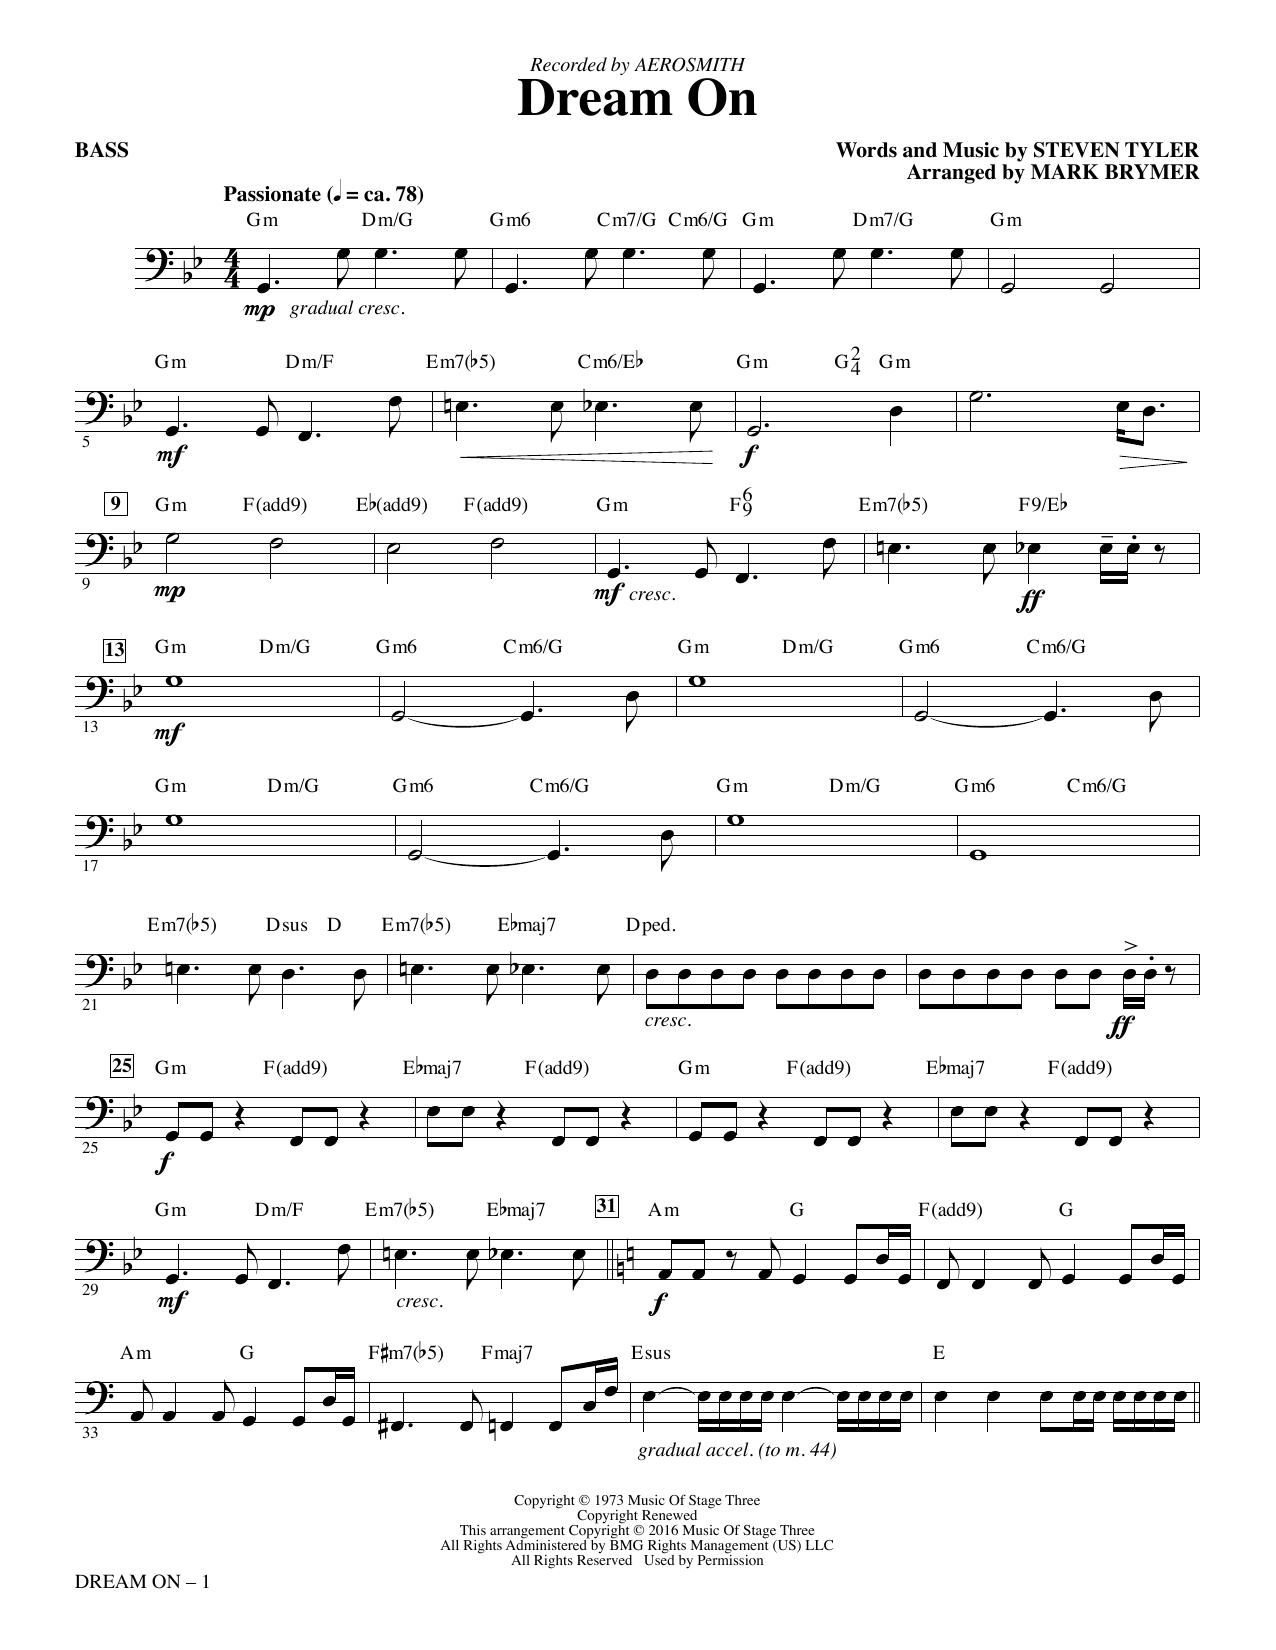 Aerosmith Dream On (arr. Mark Brymer) - Bass sheet music notes and chords. Download Printable PDF.